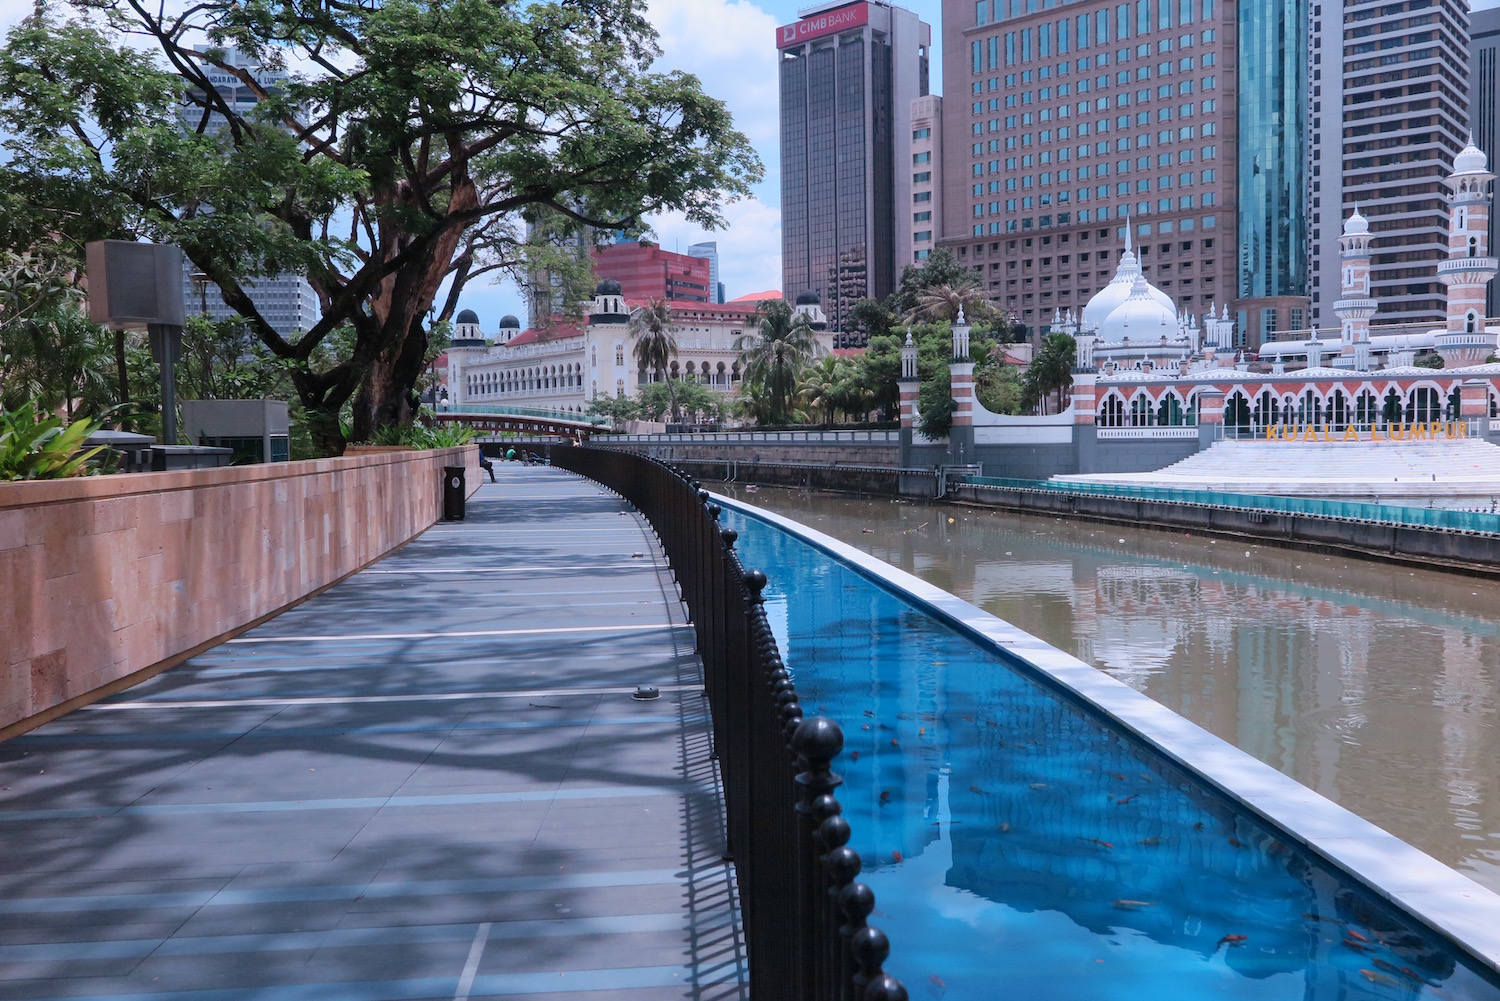 A river restored breathes new life into Kuala Lumpur